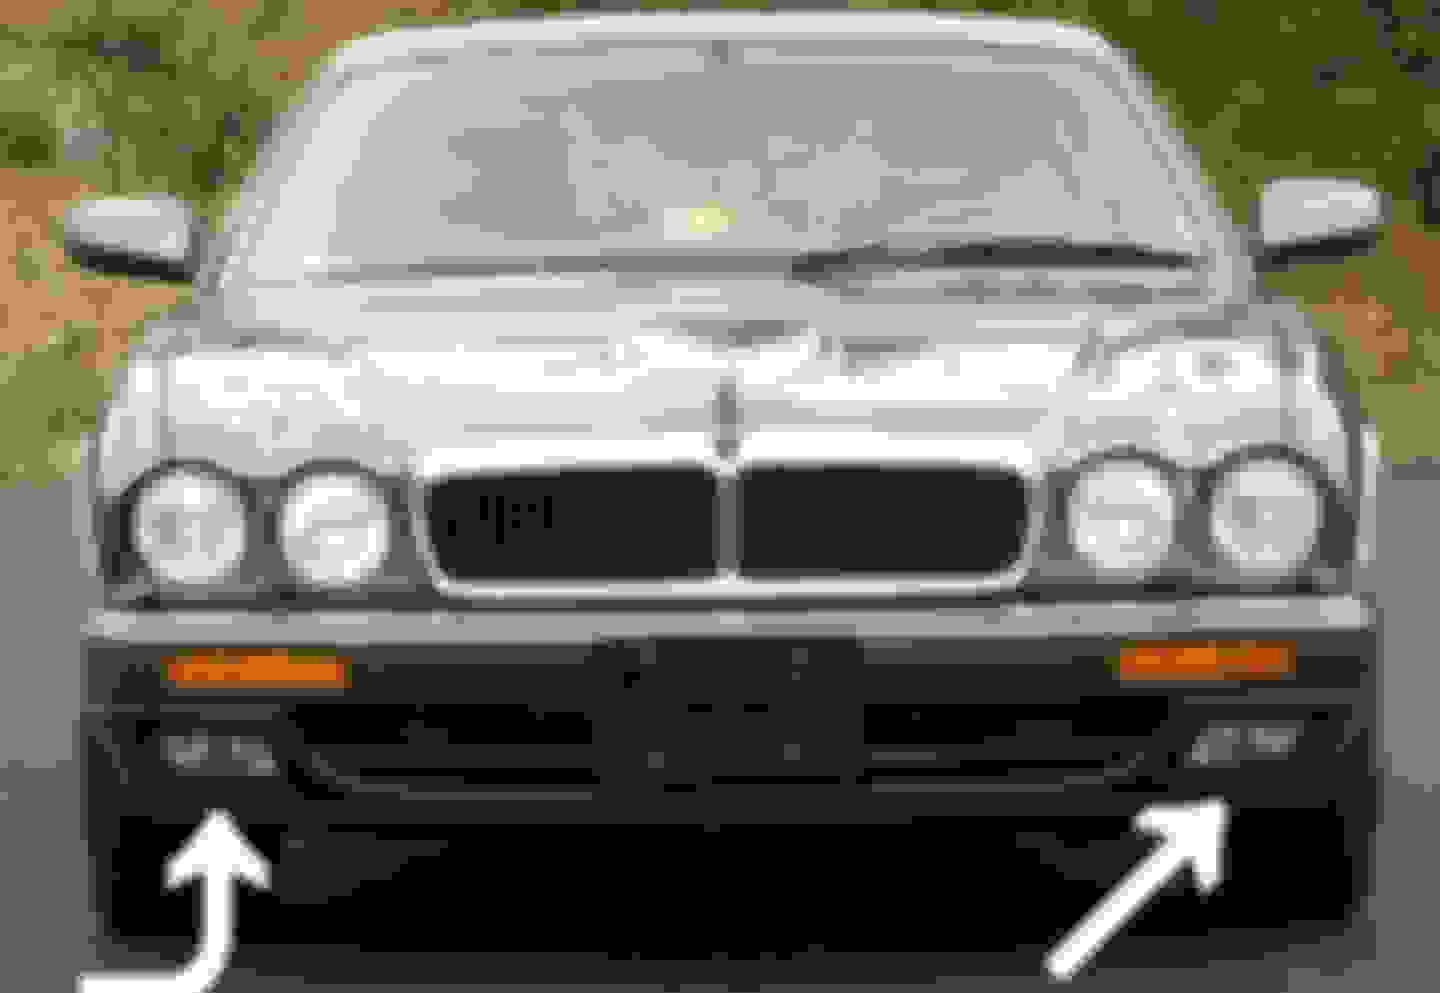 hight resolution of the face lifts have a space in the lower bumper which looks like it was meant for the curved recessed fog lights that were used on the x300 xj6 s see here